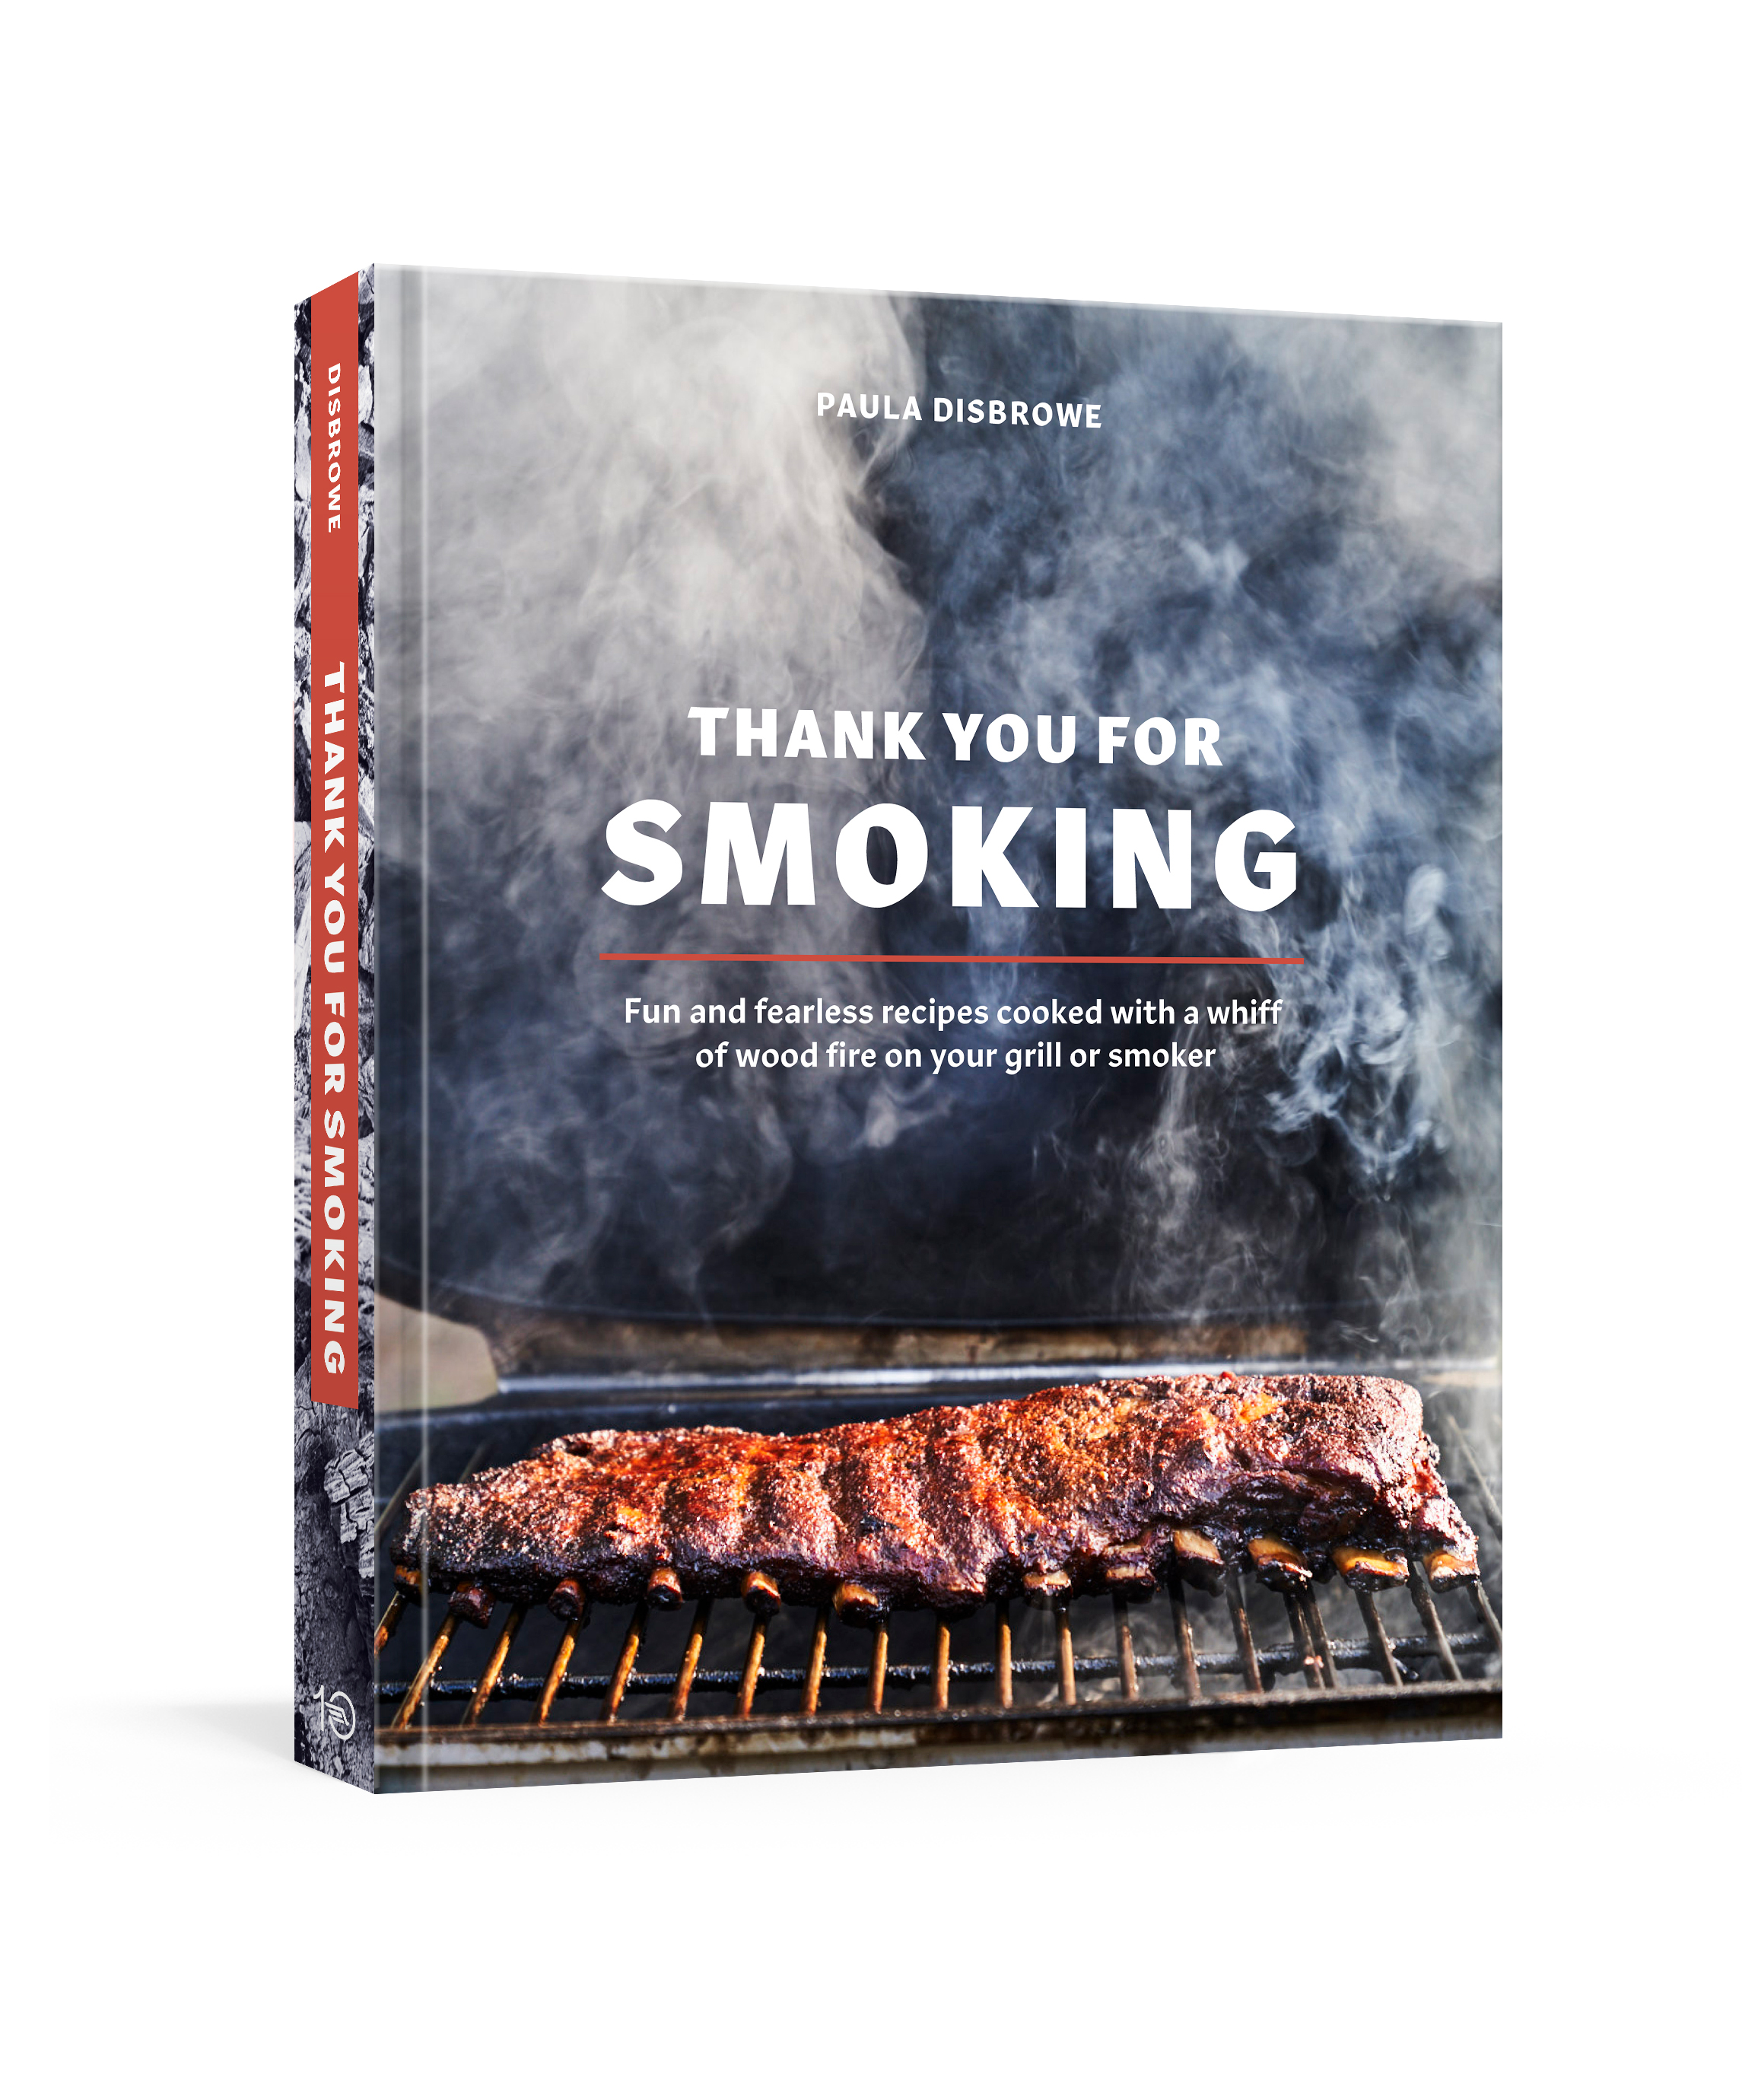 Thank You for Smoking - In this sizzling collection of one hundred recipes for smoking meats, fish, poultry, vegetables, and more, award-winning author and grilling expert Paula Disbrowe shows you how to elevate your everyday meals with seductive, smoky flavors in as little as thirty minutes. Featuring an impressive array of smoke-infused dishes that extend well beyond the realm of rib joints, Thank You for Smoking shows you how to easily rig your gas or charcoal grill, or use a backyard smoker, to infuse everything you love to eat with a smoky nuance.